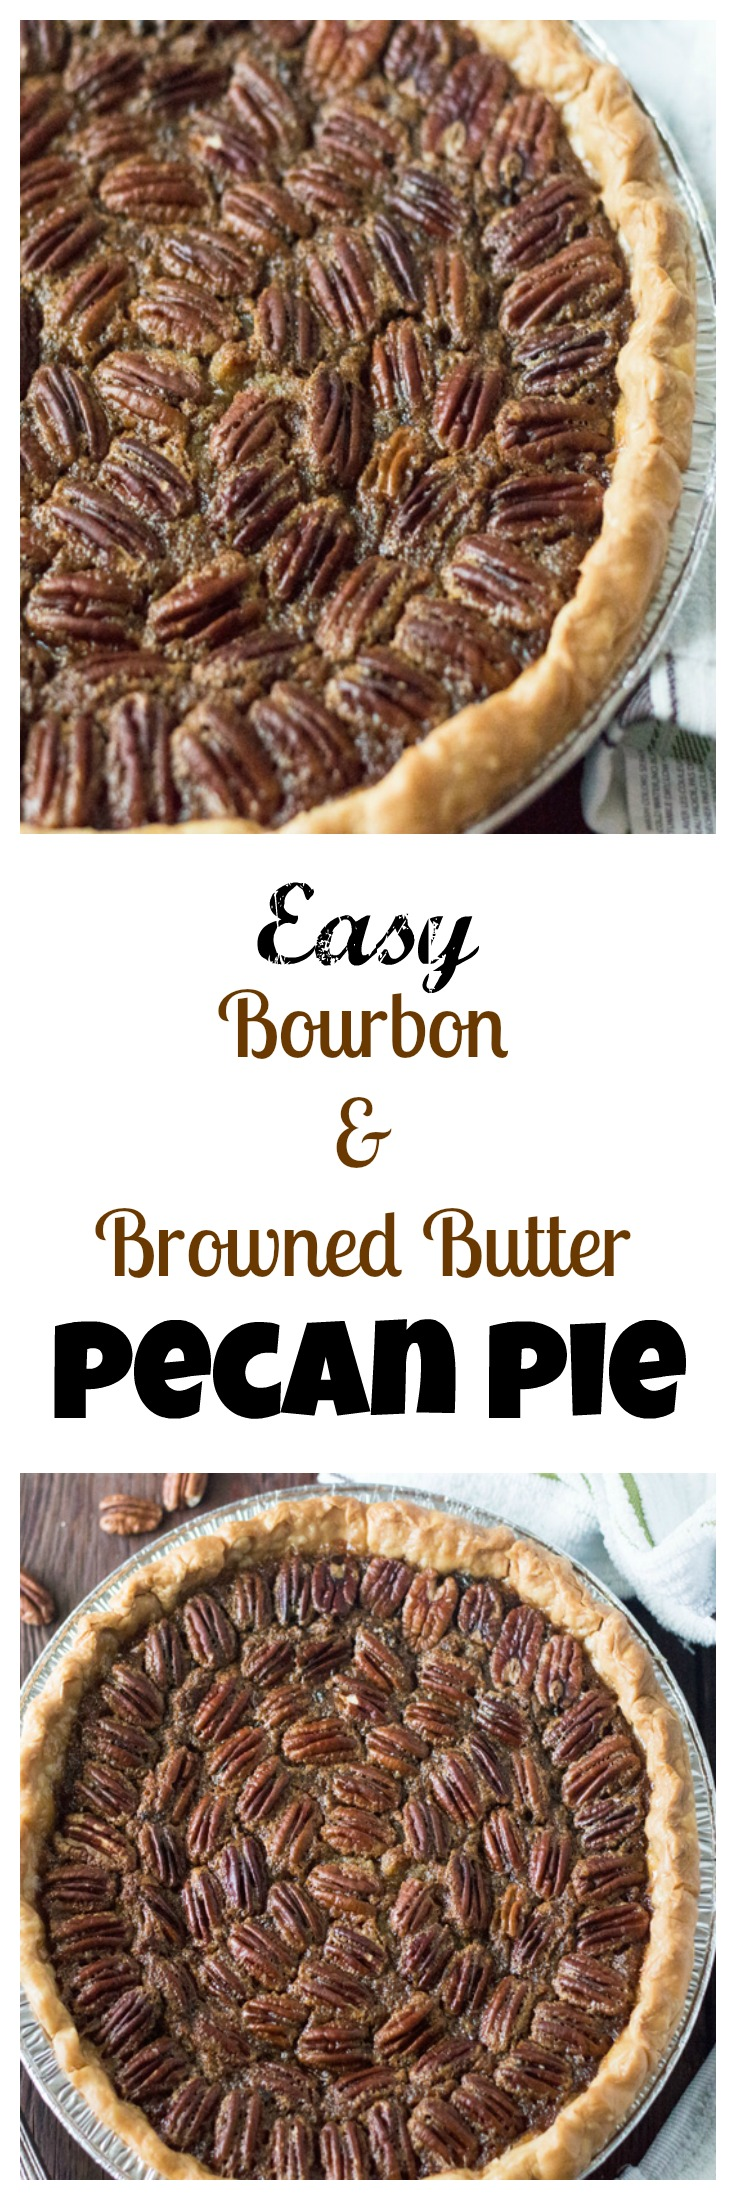 Bourbon and Browned Butter Pecan Pie